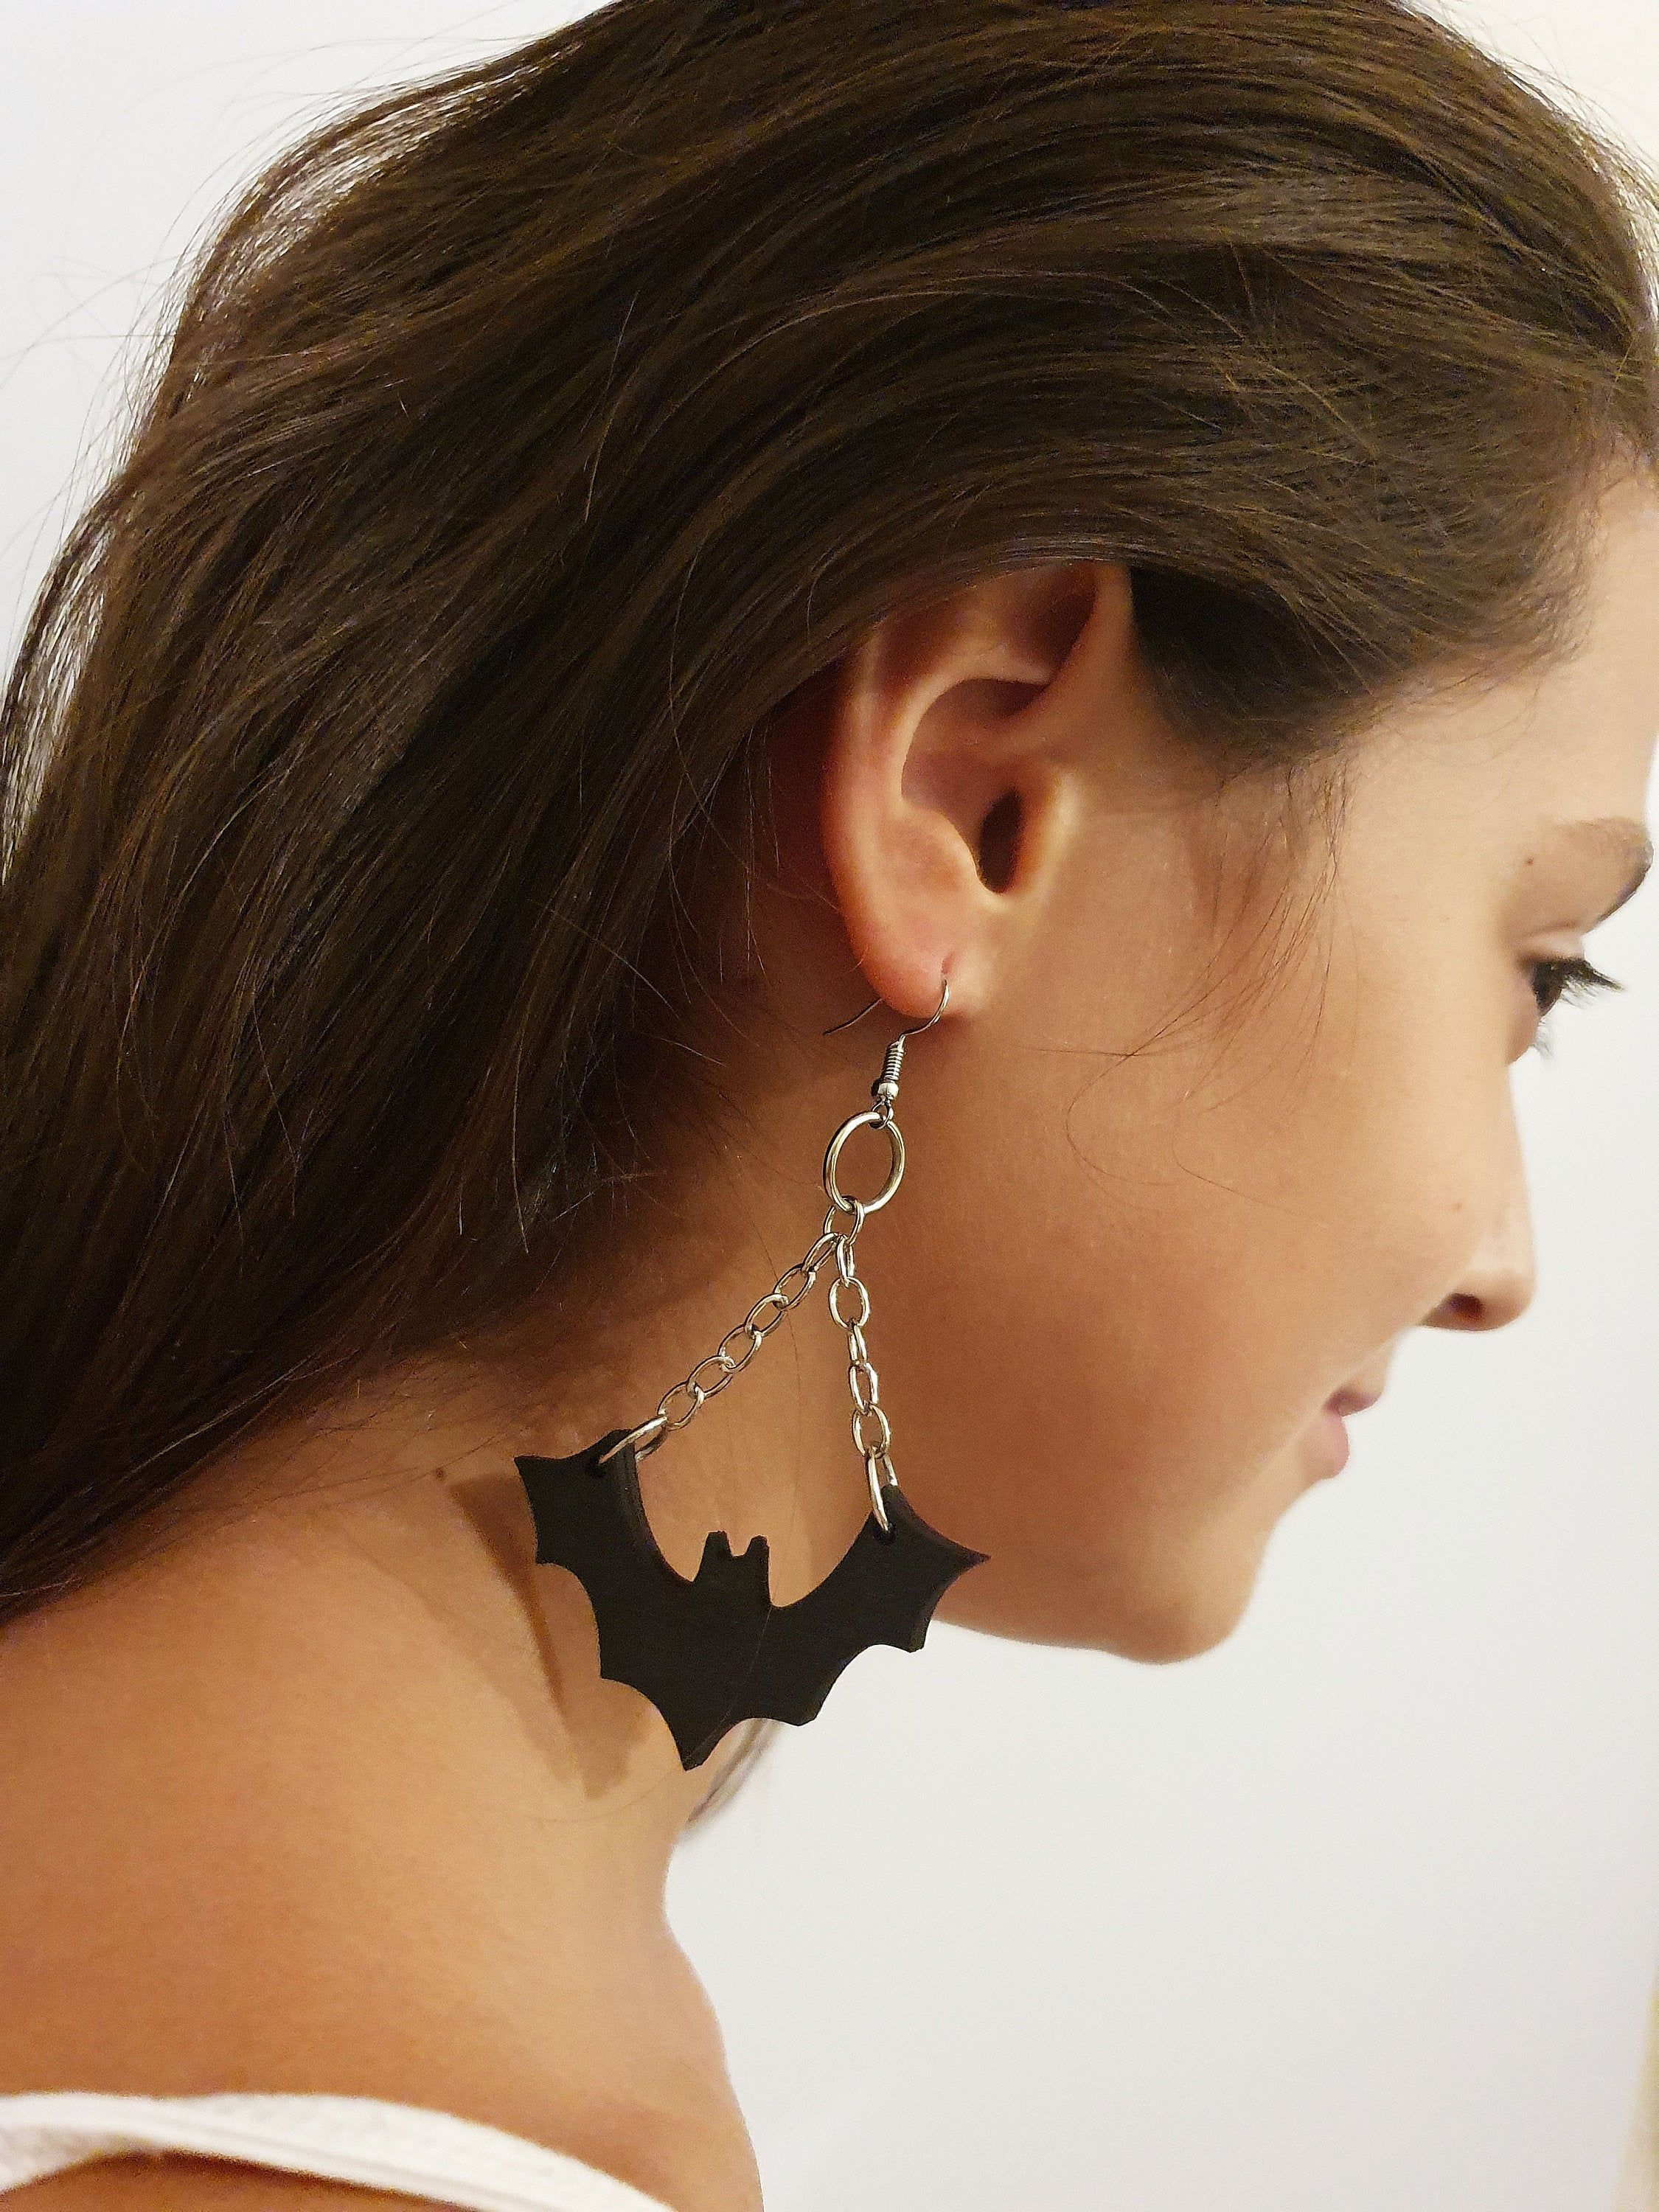 Bat Earrings Halloween Jewelry , Drop Earrings , Wooden Black Earrings , Halloween costume , Spooky Outfit #spookyoutfits Bat Wooden Earrings specially designed as Halloween accessory . These can be a perfect addition to your Halloween costume and spooky look .  Drop Black Earrings , Wooden Jewelry  Length : 8 cm  Width : 5 cm  Material : Wood Colour : Black #spookyoutfits Bat Earrings Halloween Jewelry , Drop Earrings , Wooden Black Earrings , Halloween costume , Spooky Outfit #spookyoutfits Ba #spookyoutfits